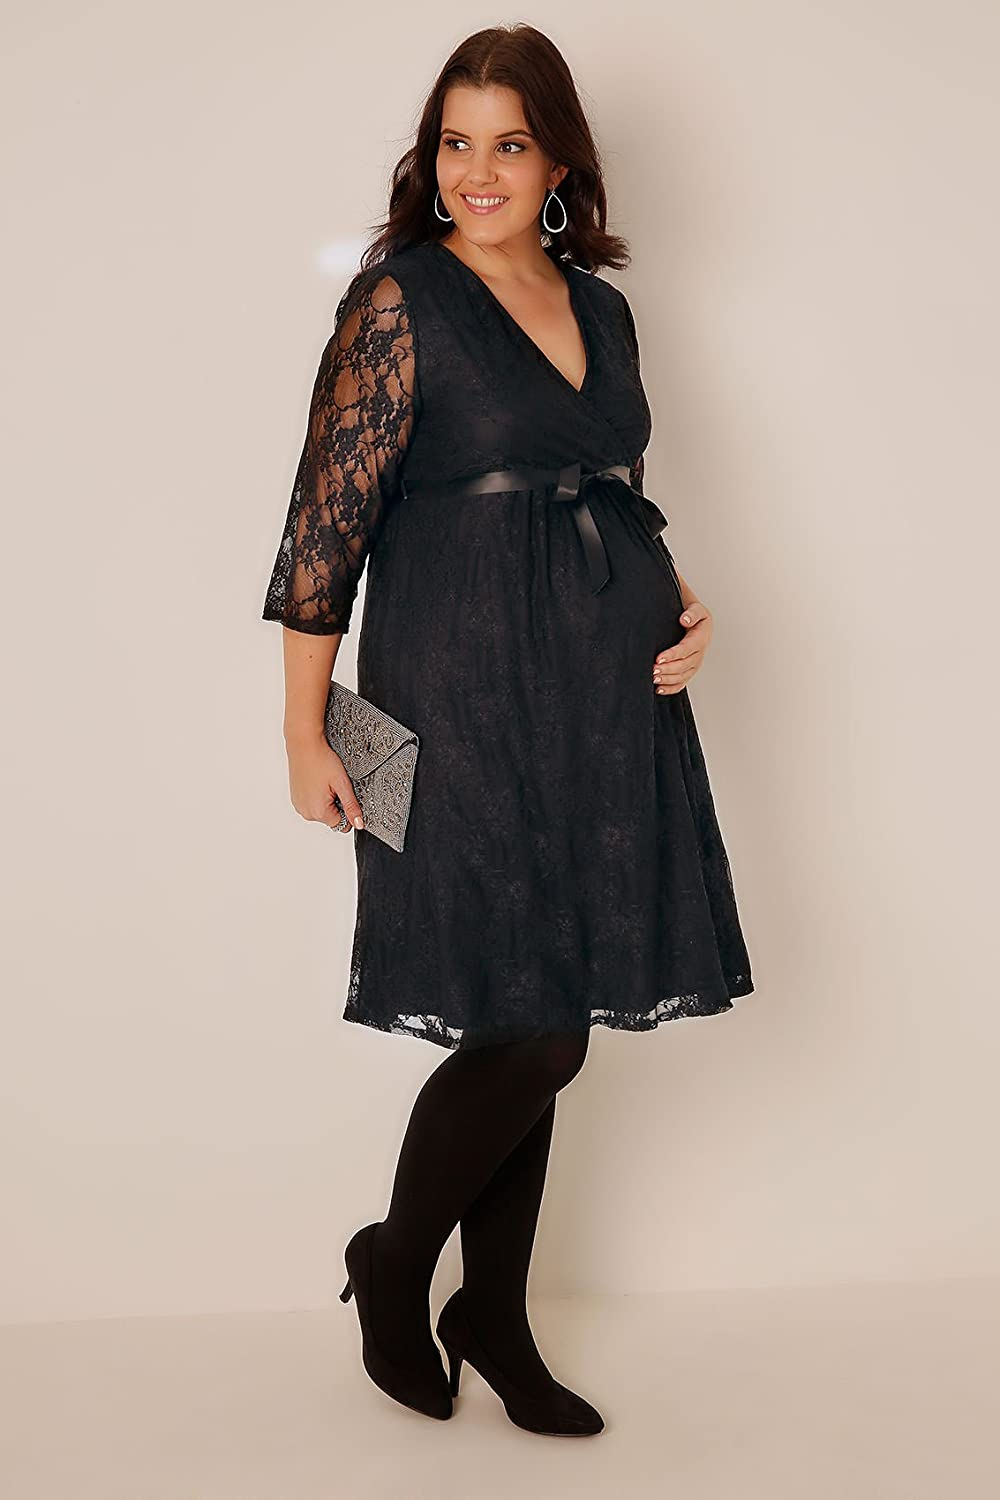 Plus Size Womens Bump It Up Maternity Lace Wrap Dress With Ribbon Tie